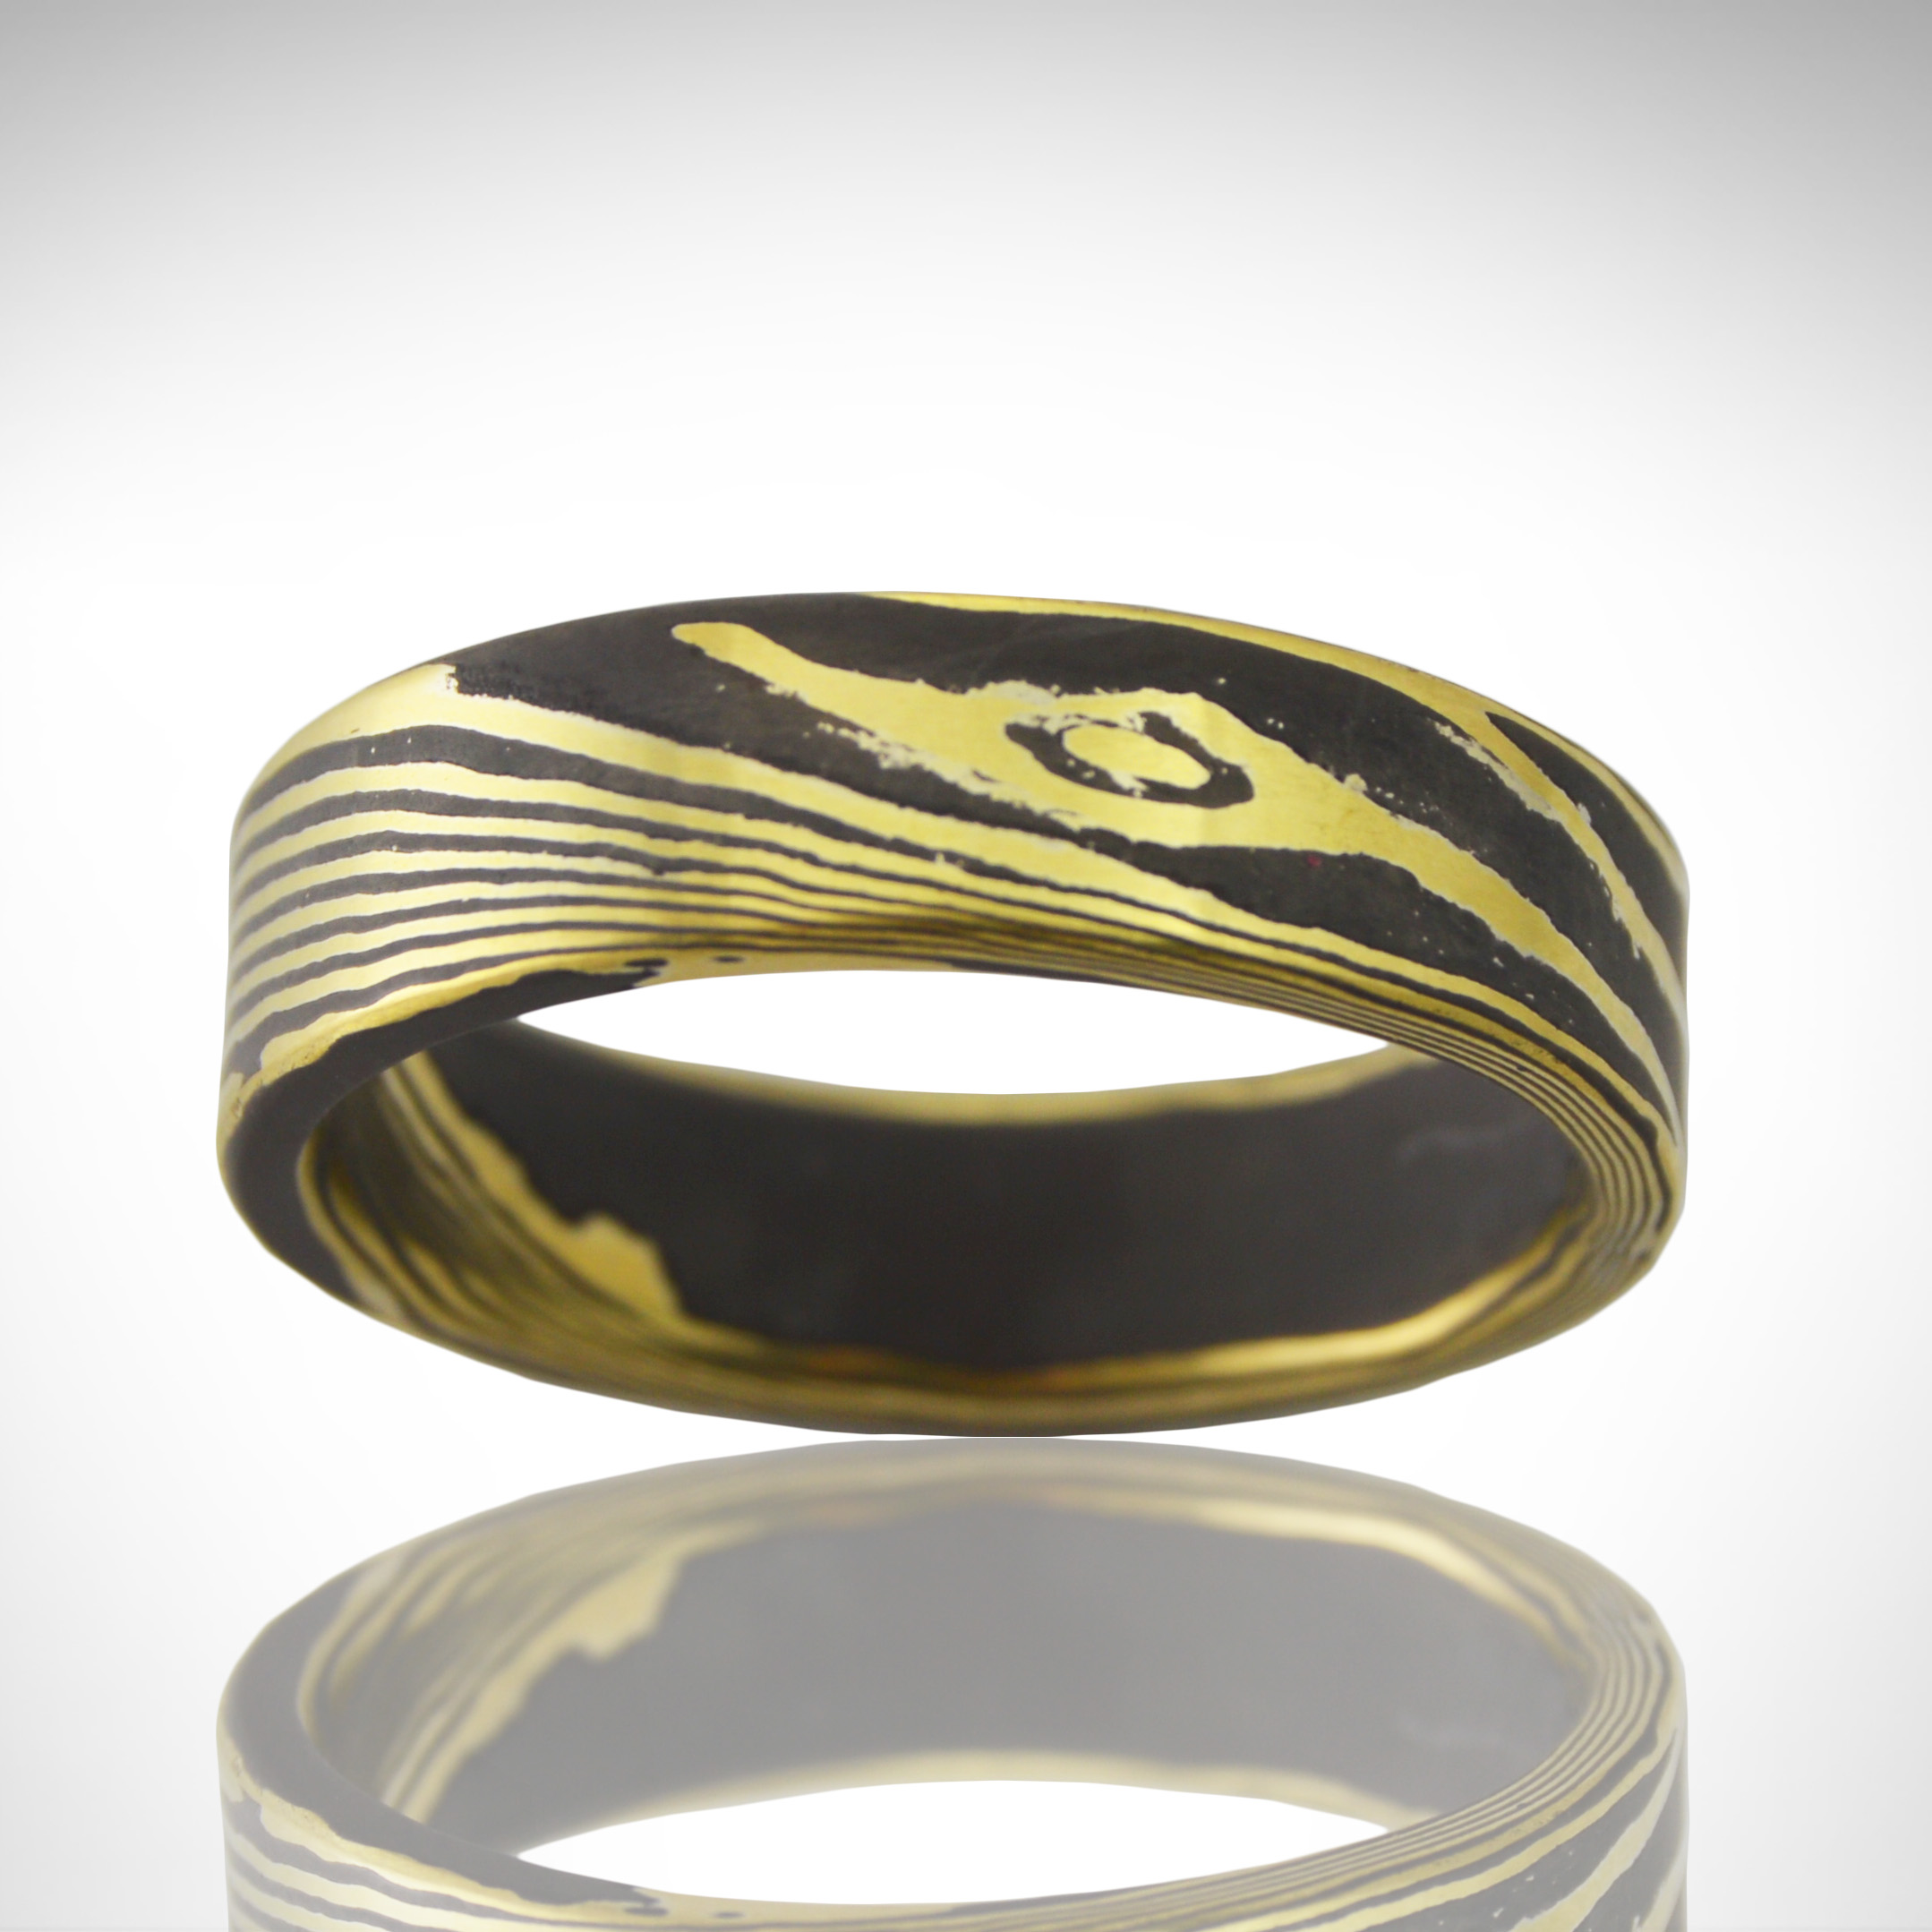 m wedding rings finitions taux pinterest google martel et gold recherche or mobius pin jewellery